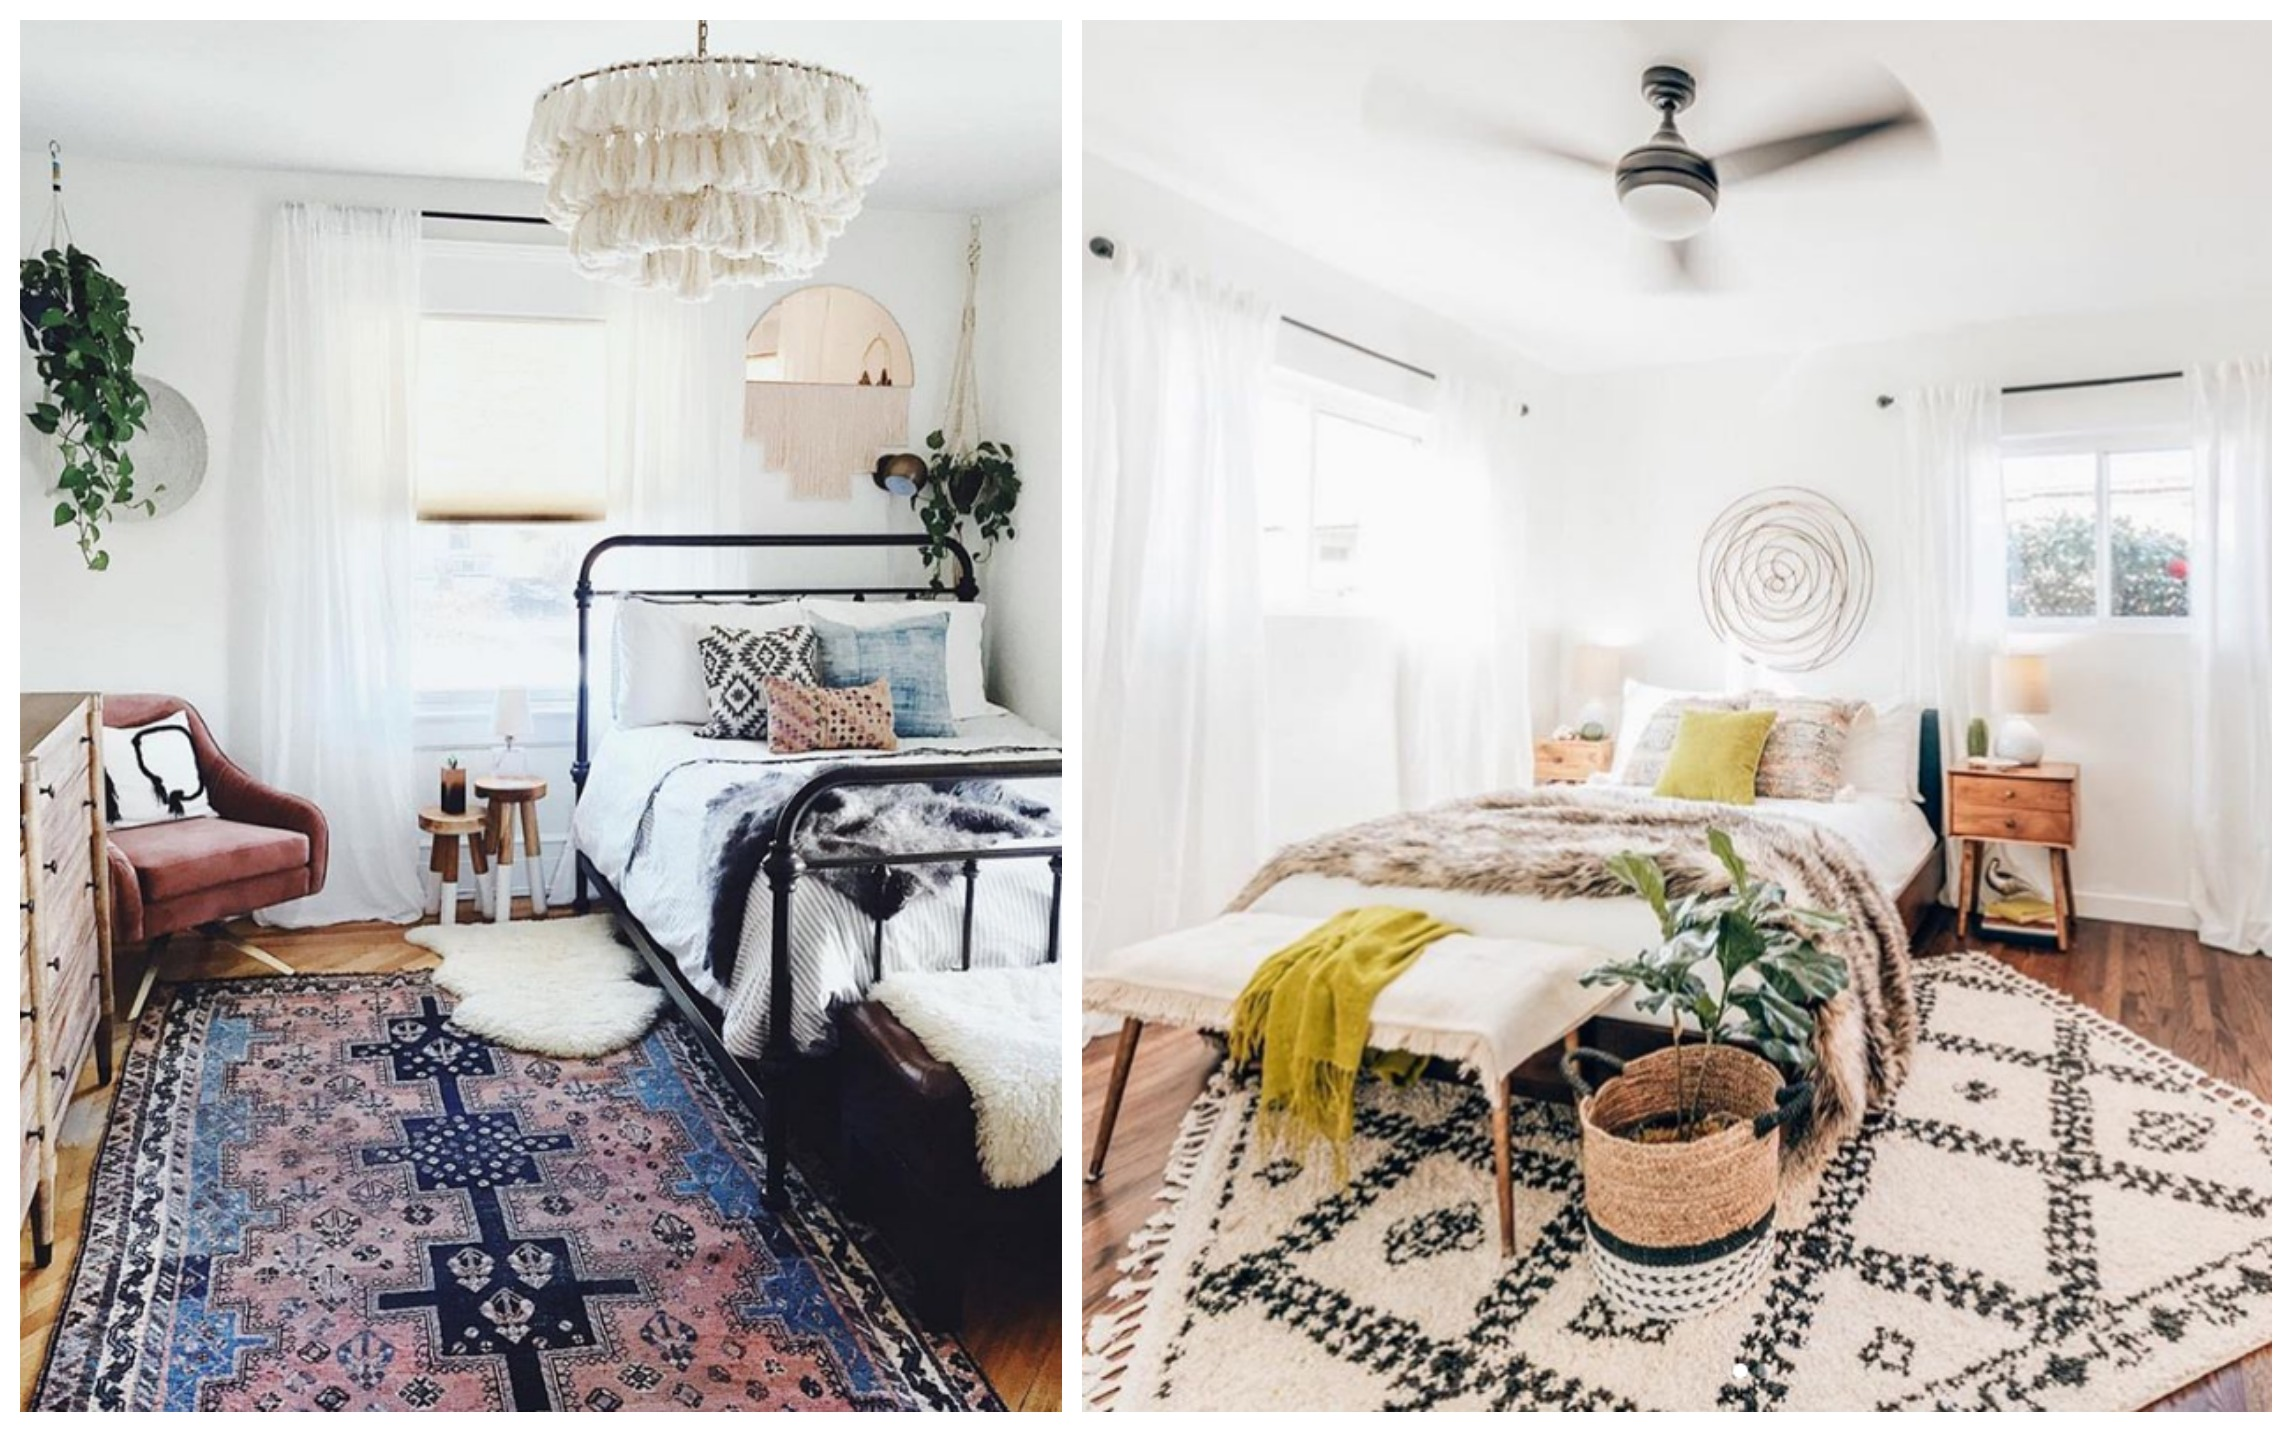 11 Boho Bedroom Ideas To Decorate Your